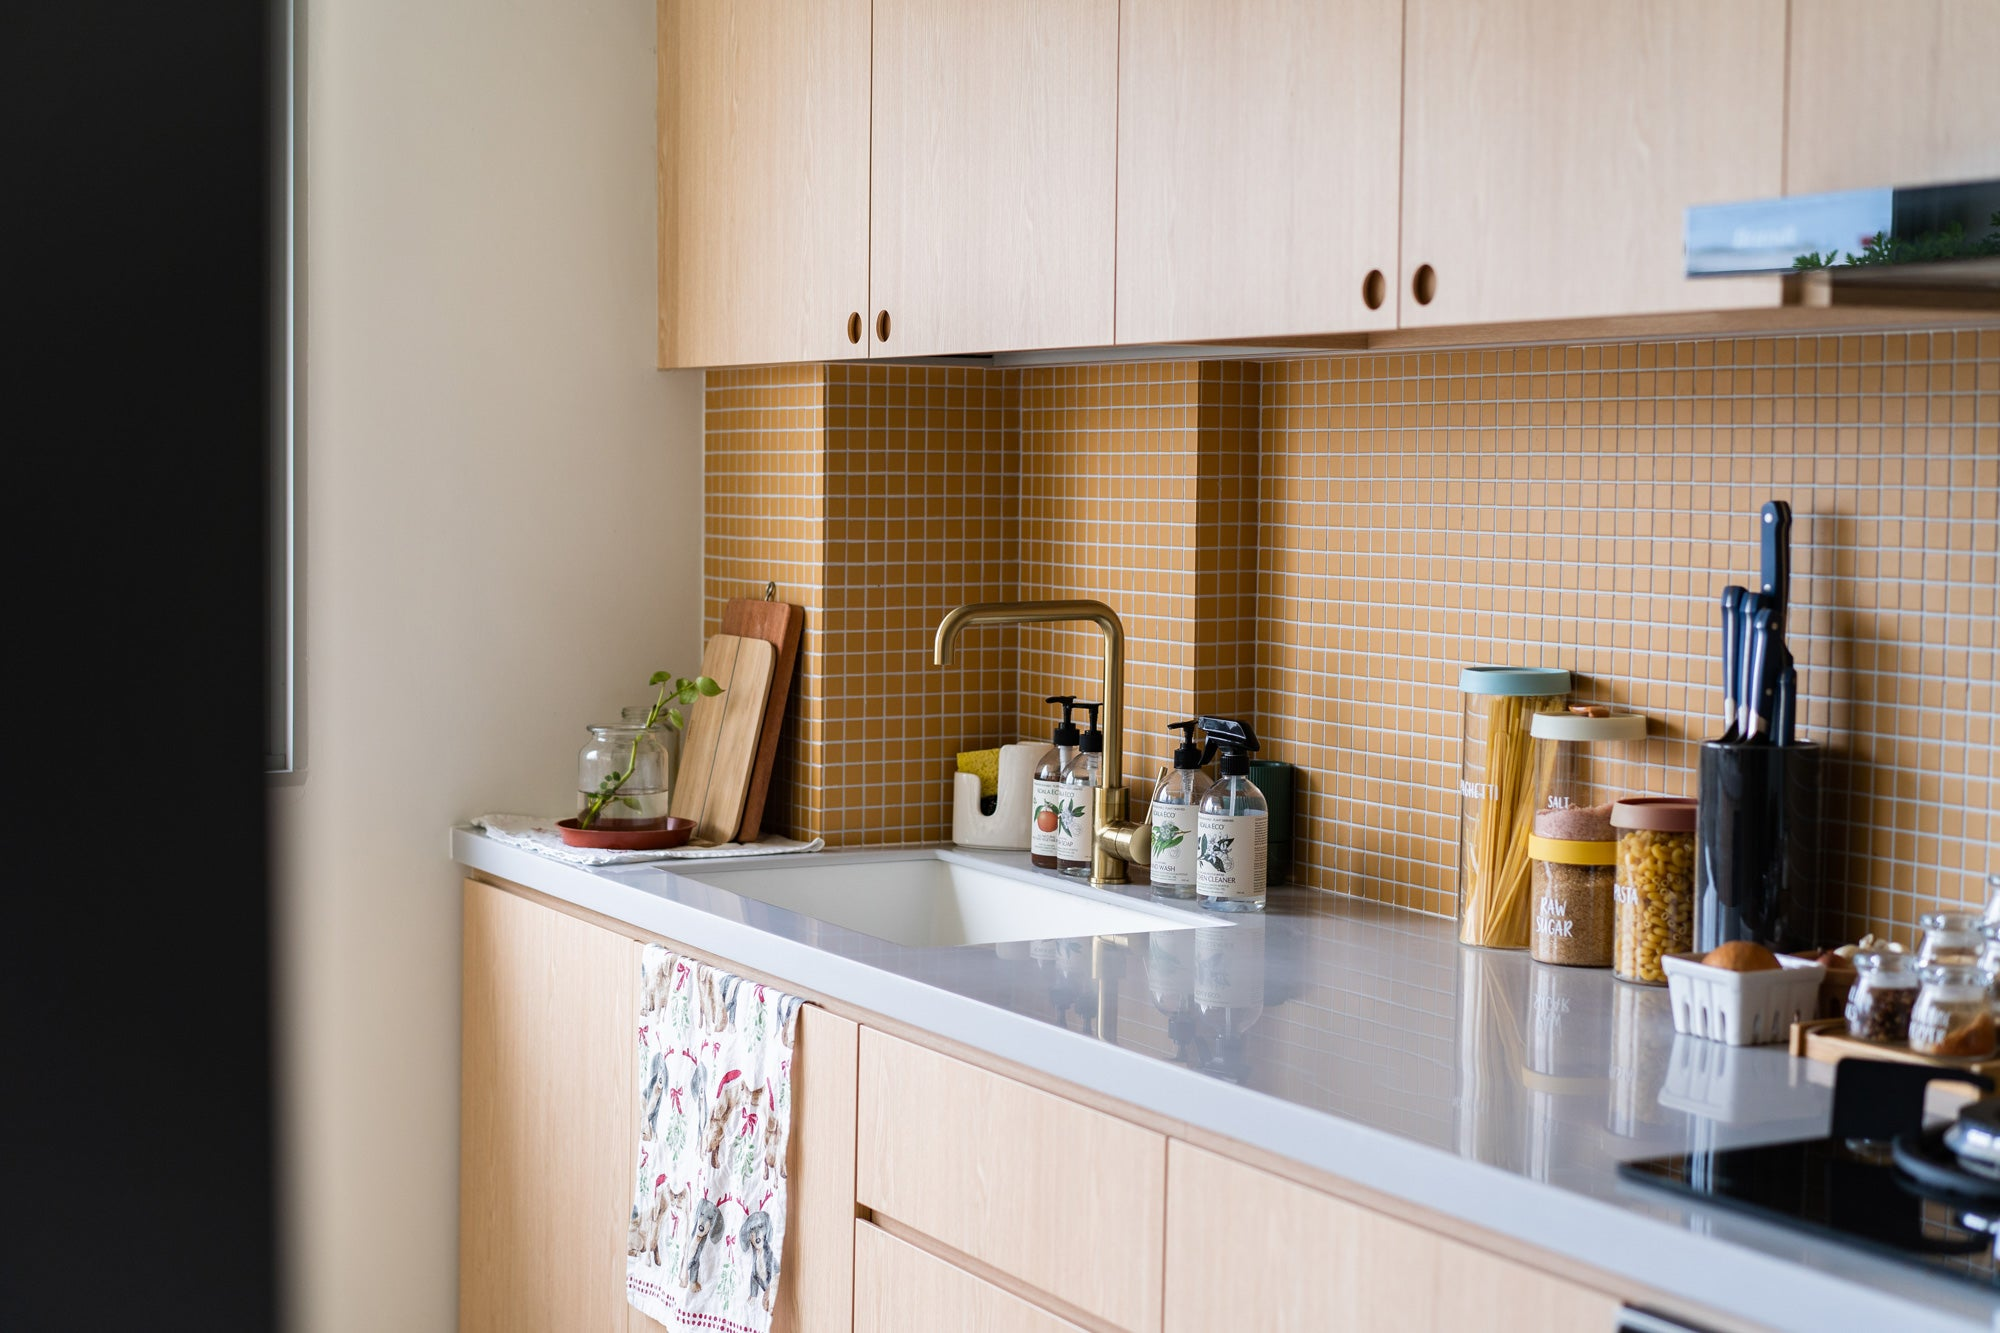 wooden kitchen cabinets with yellow backsplash tiles